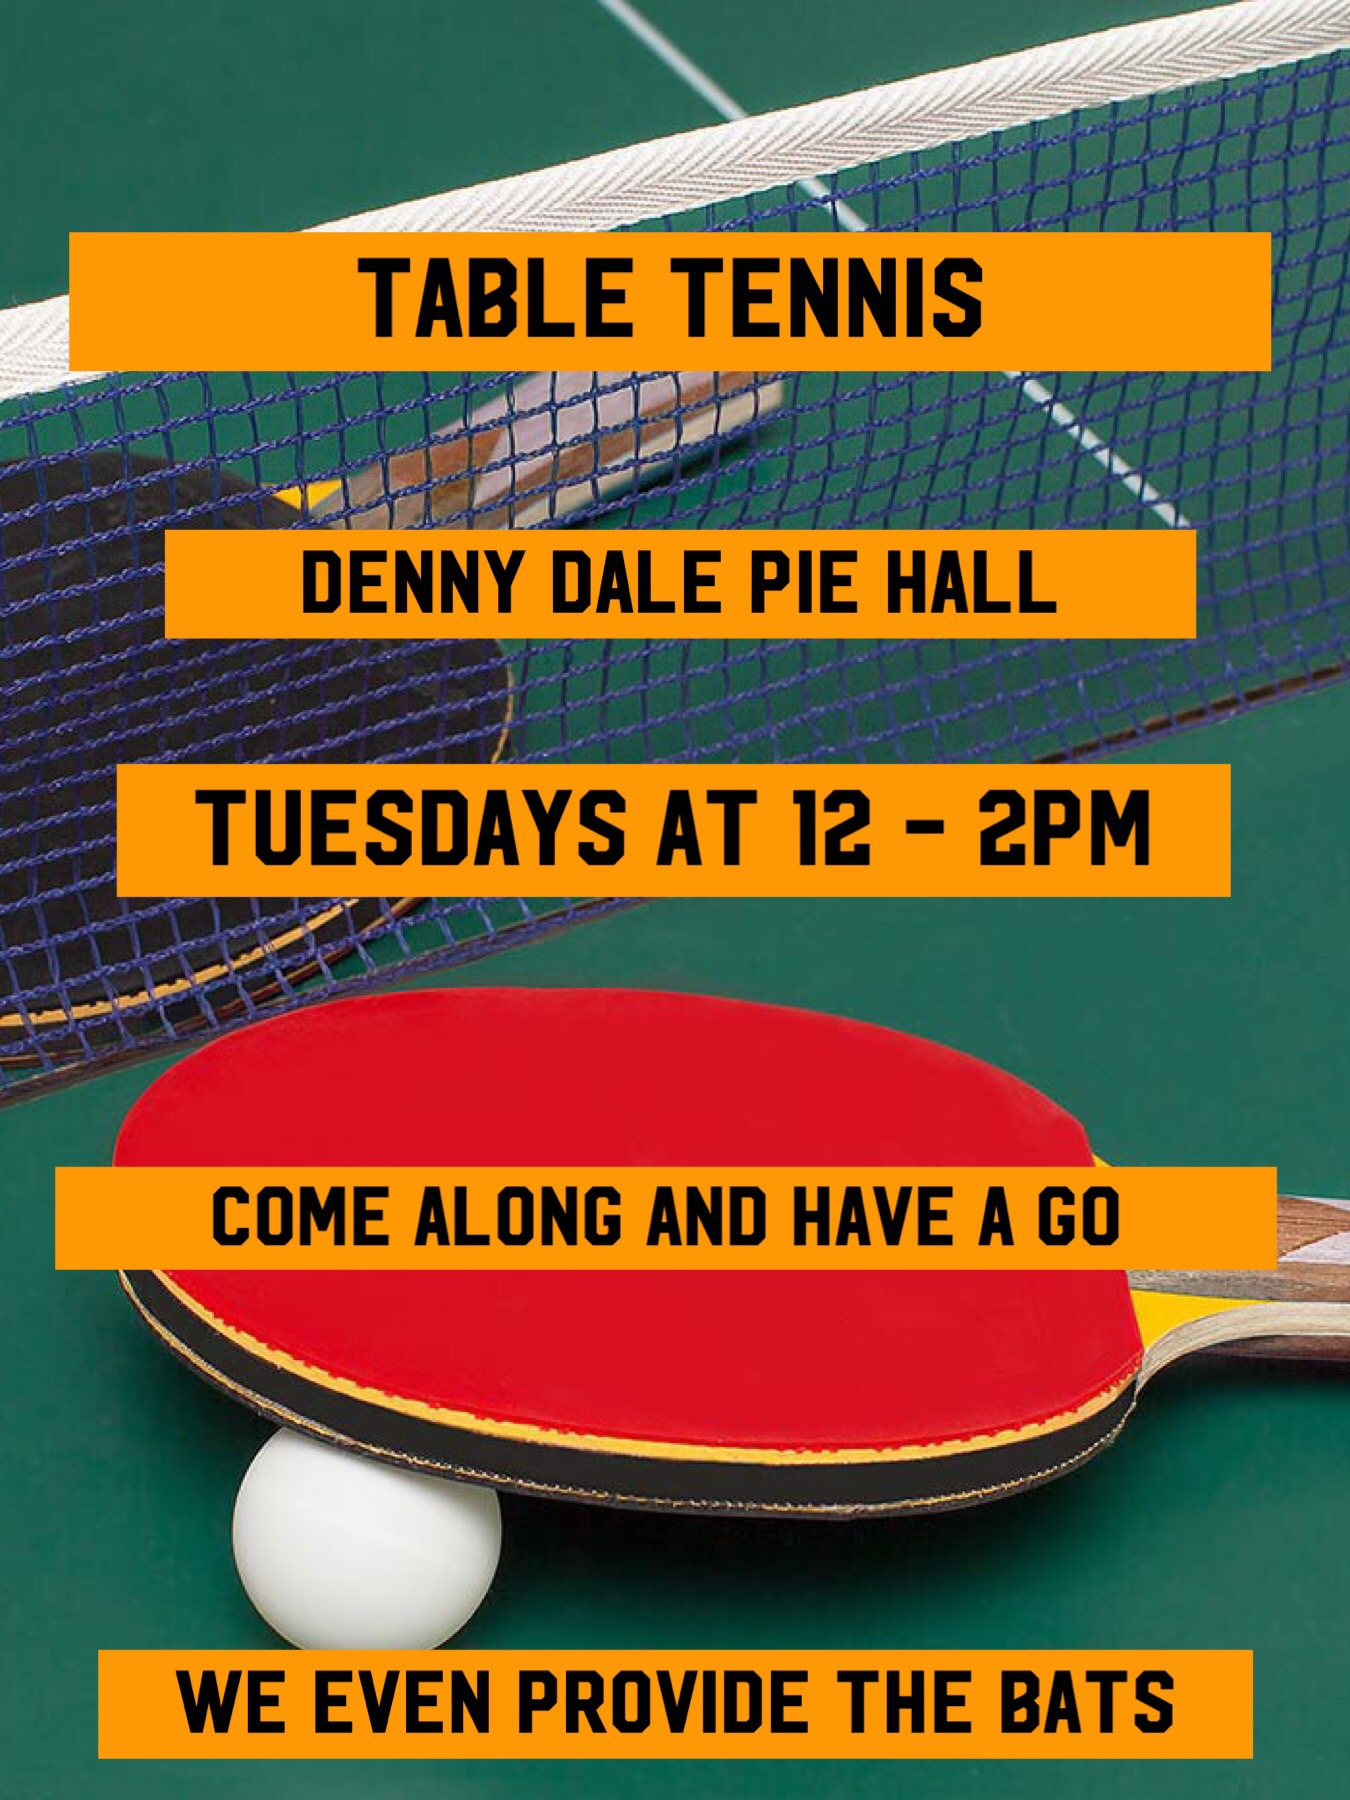 Come along to the Tuesday session